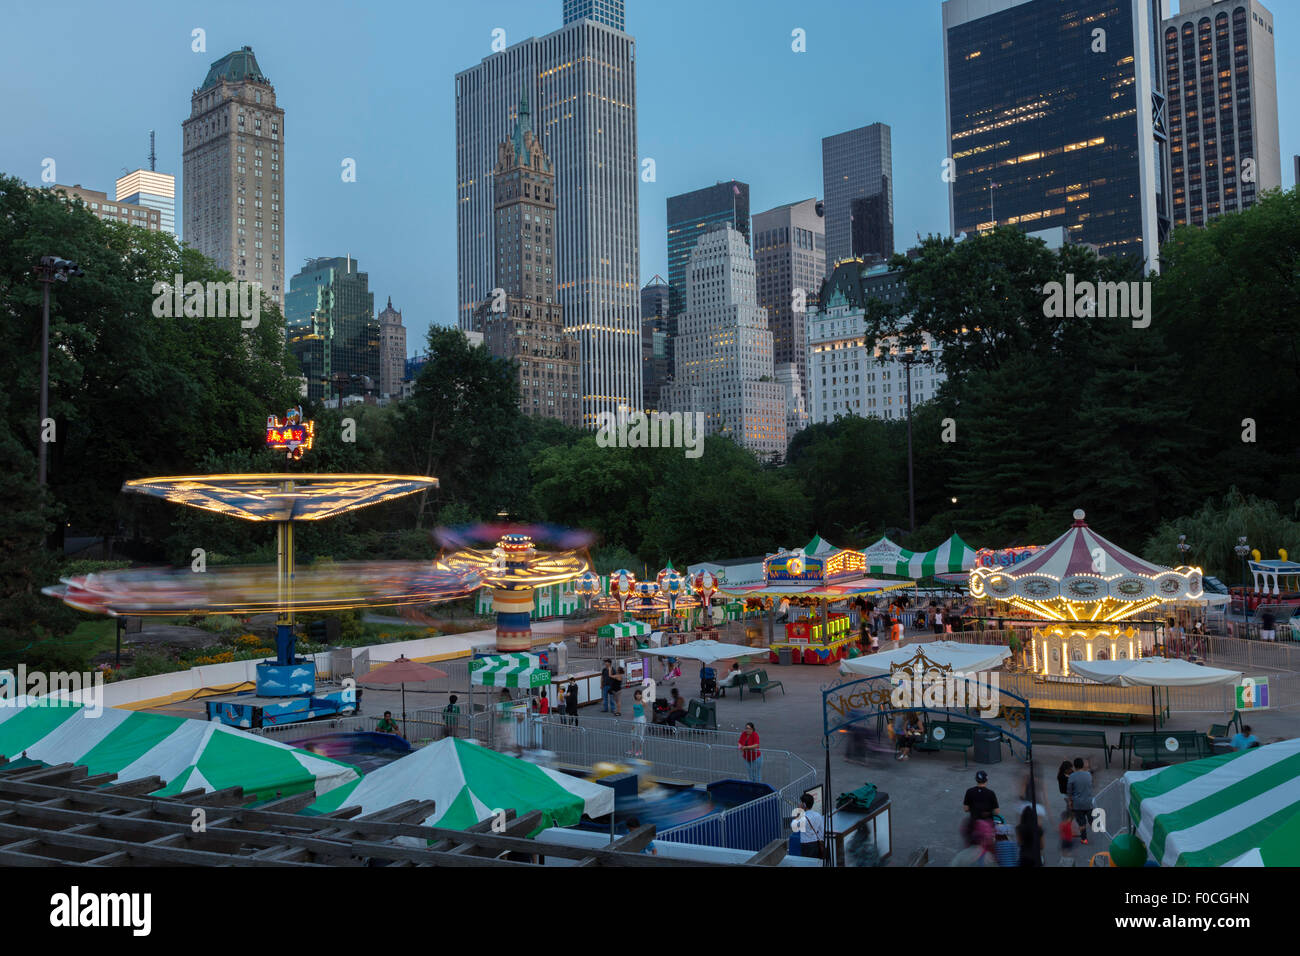 Carnival Rides Night Time On Stock Photos Amp Carnival Rides Night Time On Stock Images Alamy